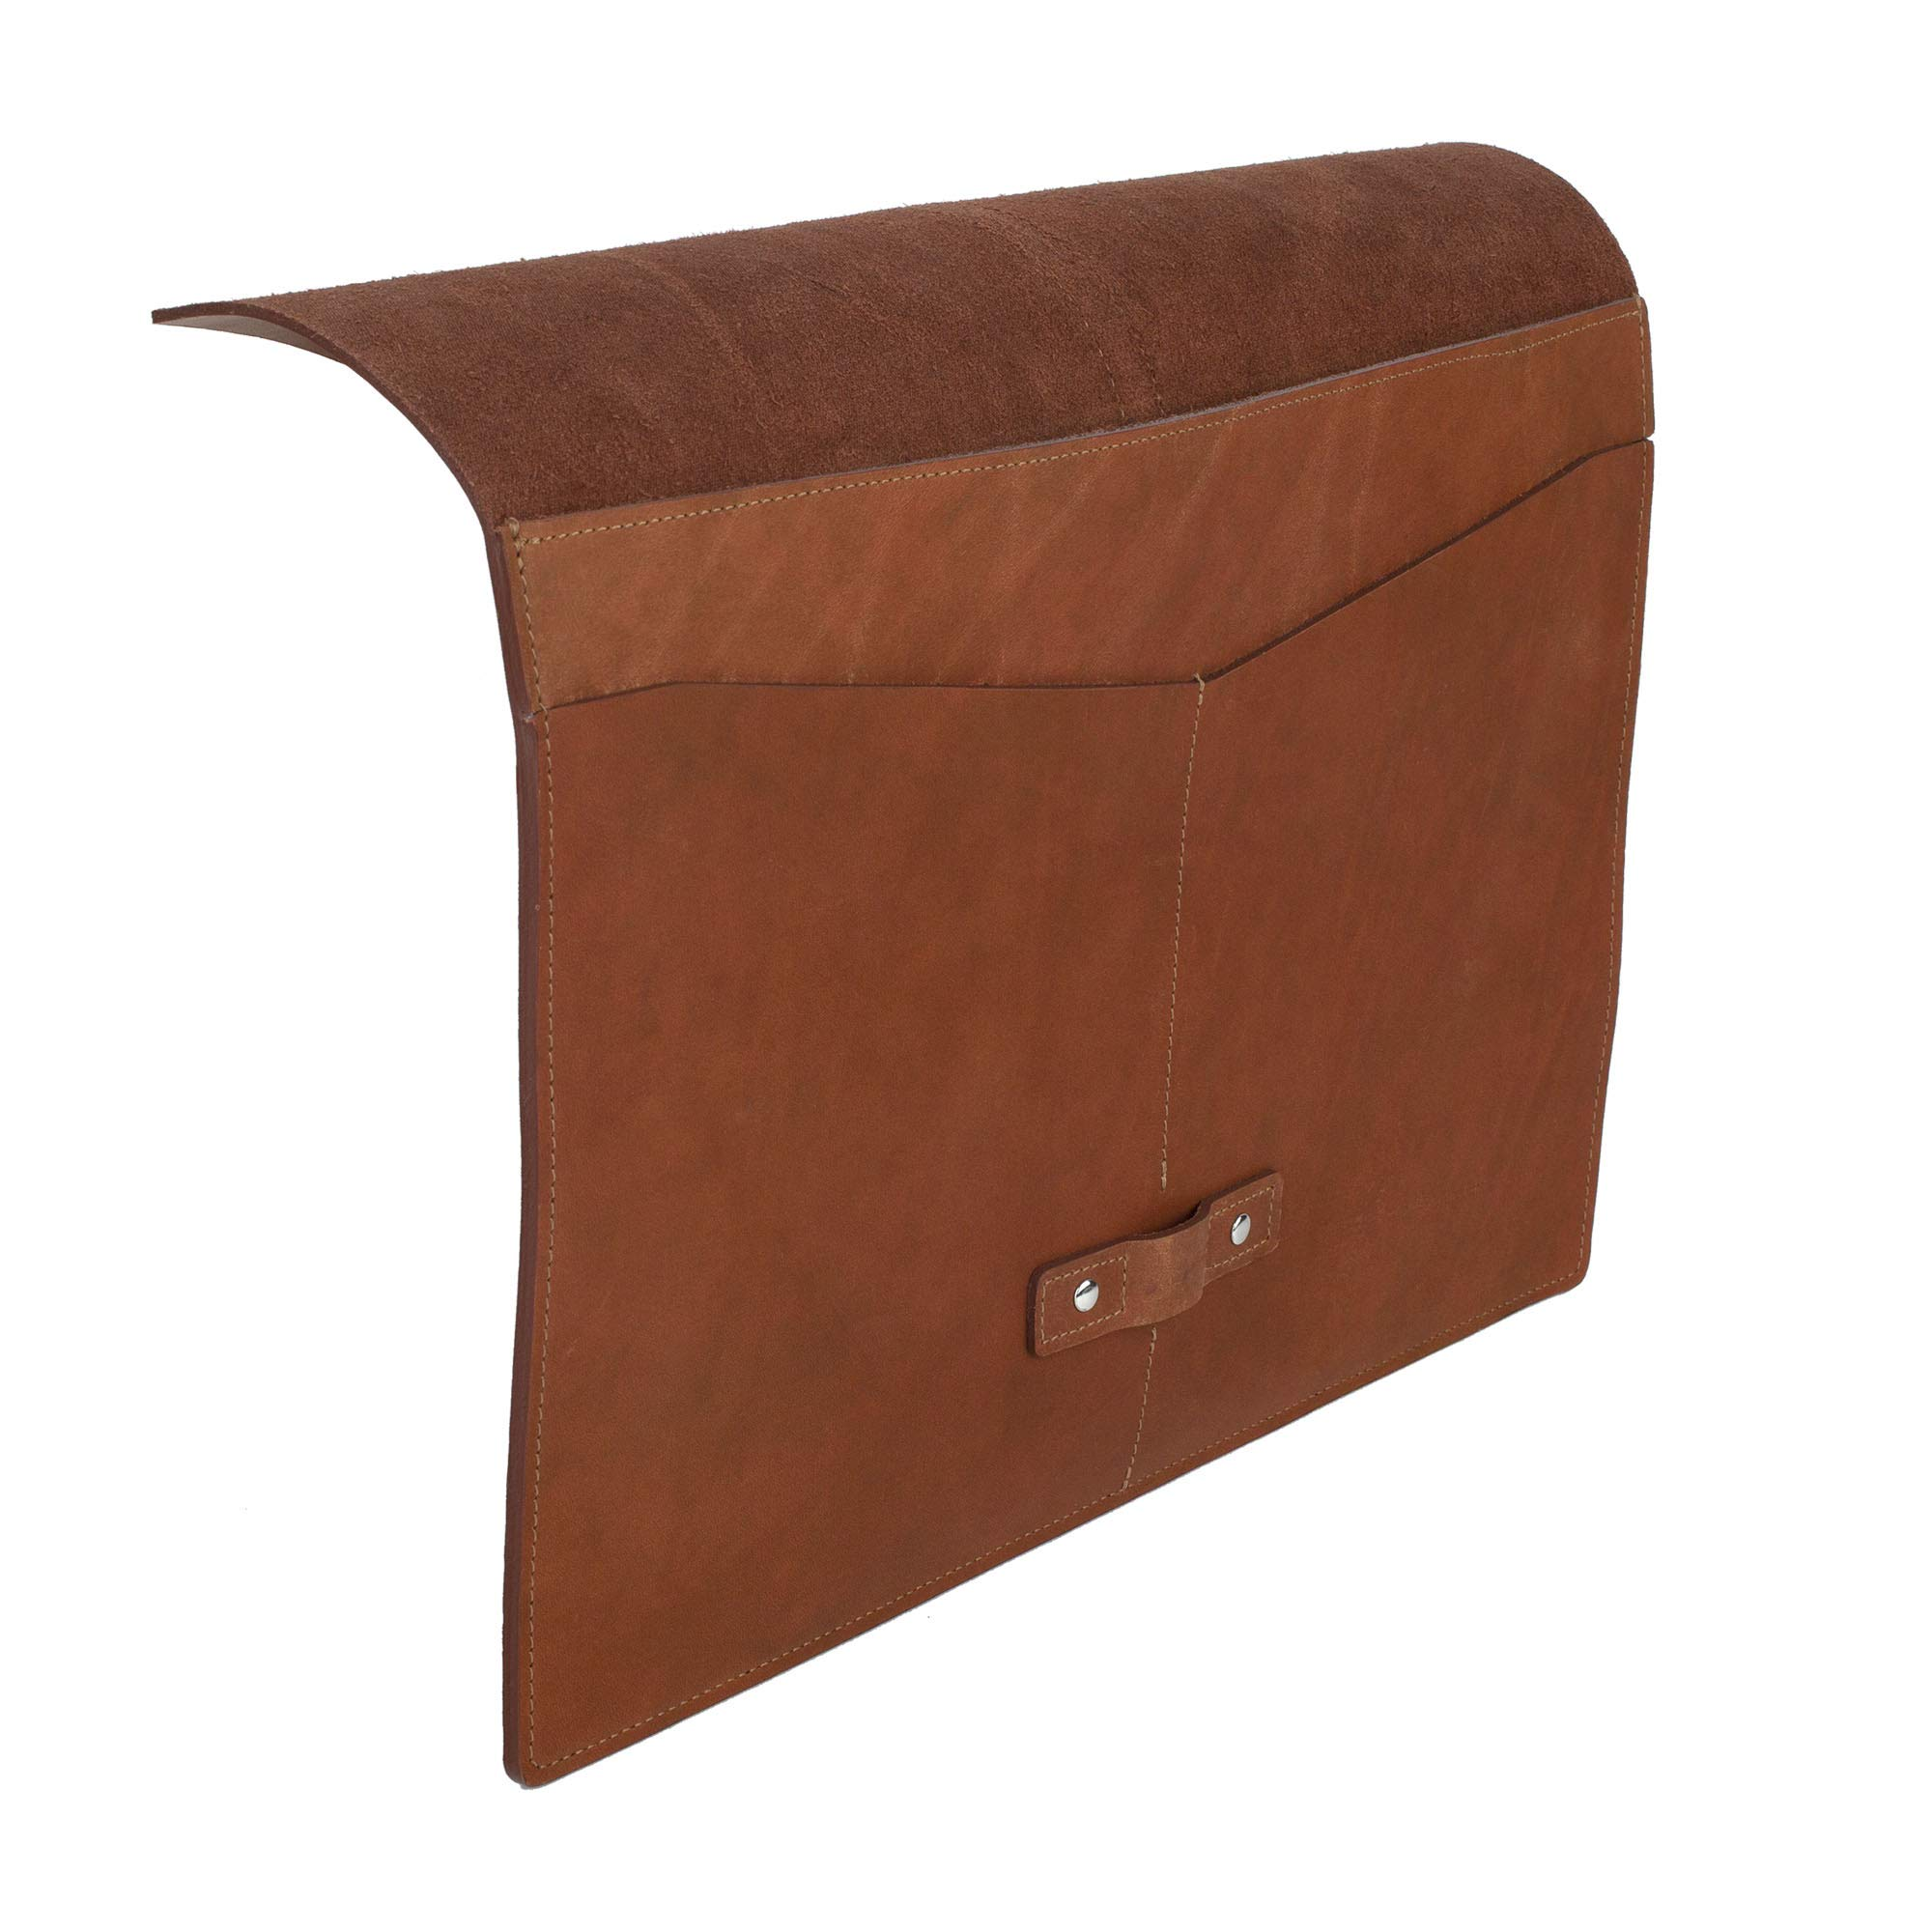 SLATE COLLECTION Belltown Small Laptop Sleeve, Full-Grain Leather (Cognac, fits 13'' Laptop) by SLATE COLLECTION (Image #7)